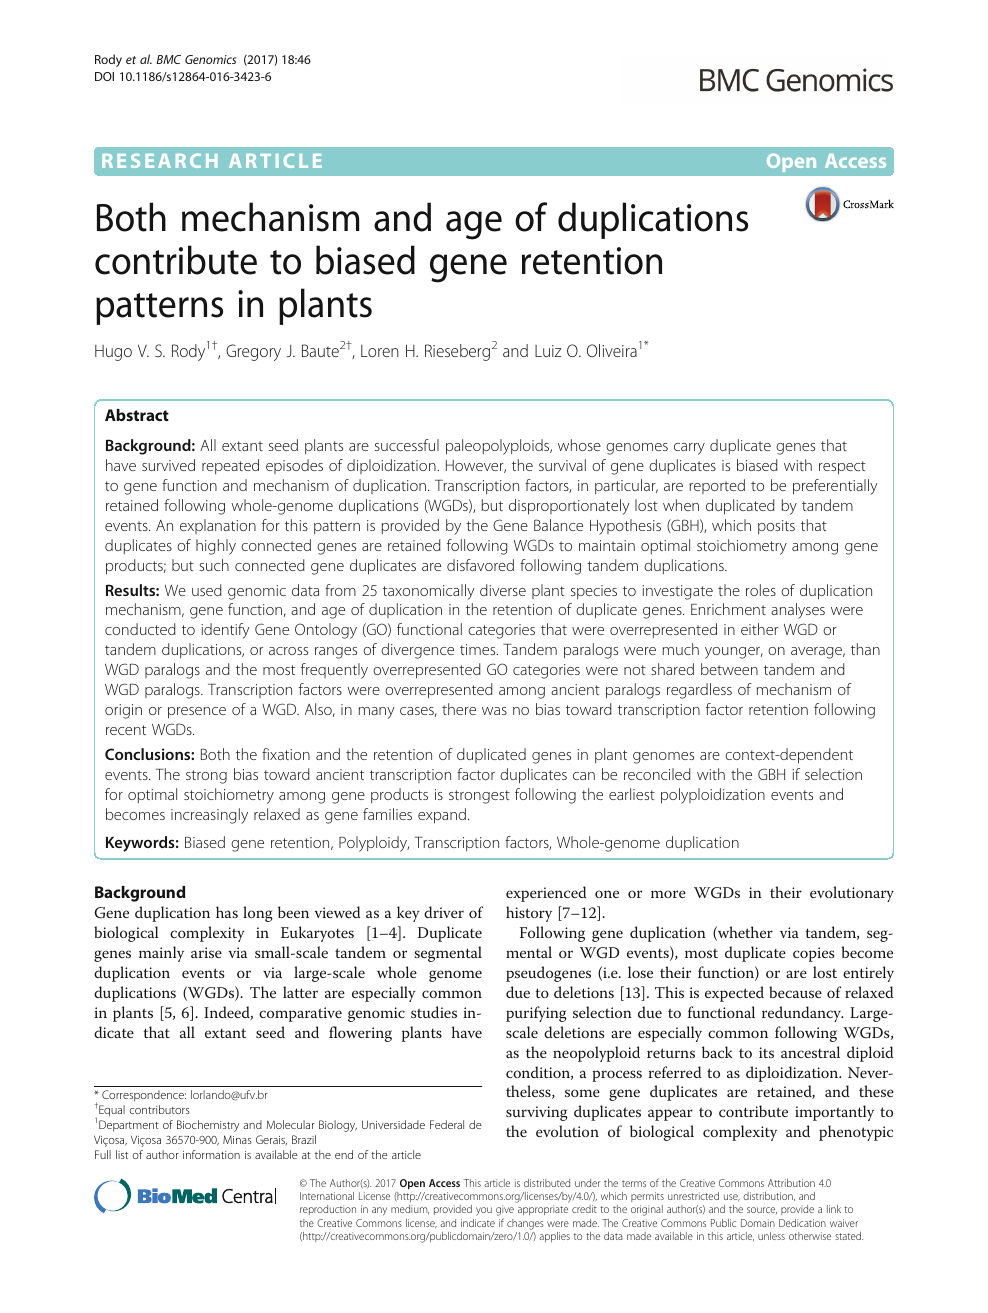 Both mechanism and age of duplications contribute to biased gene